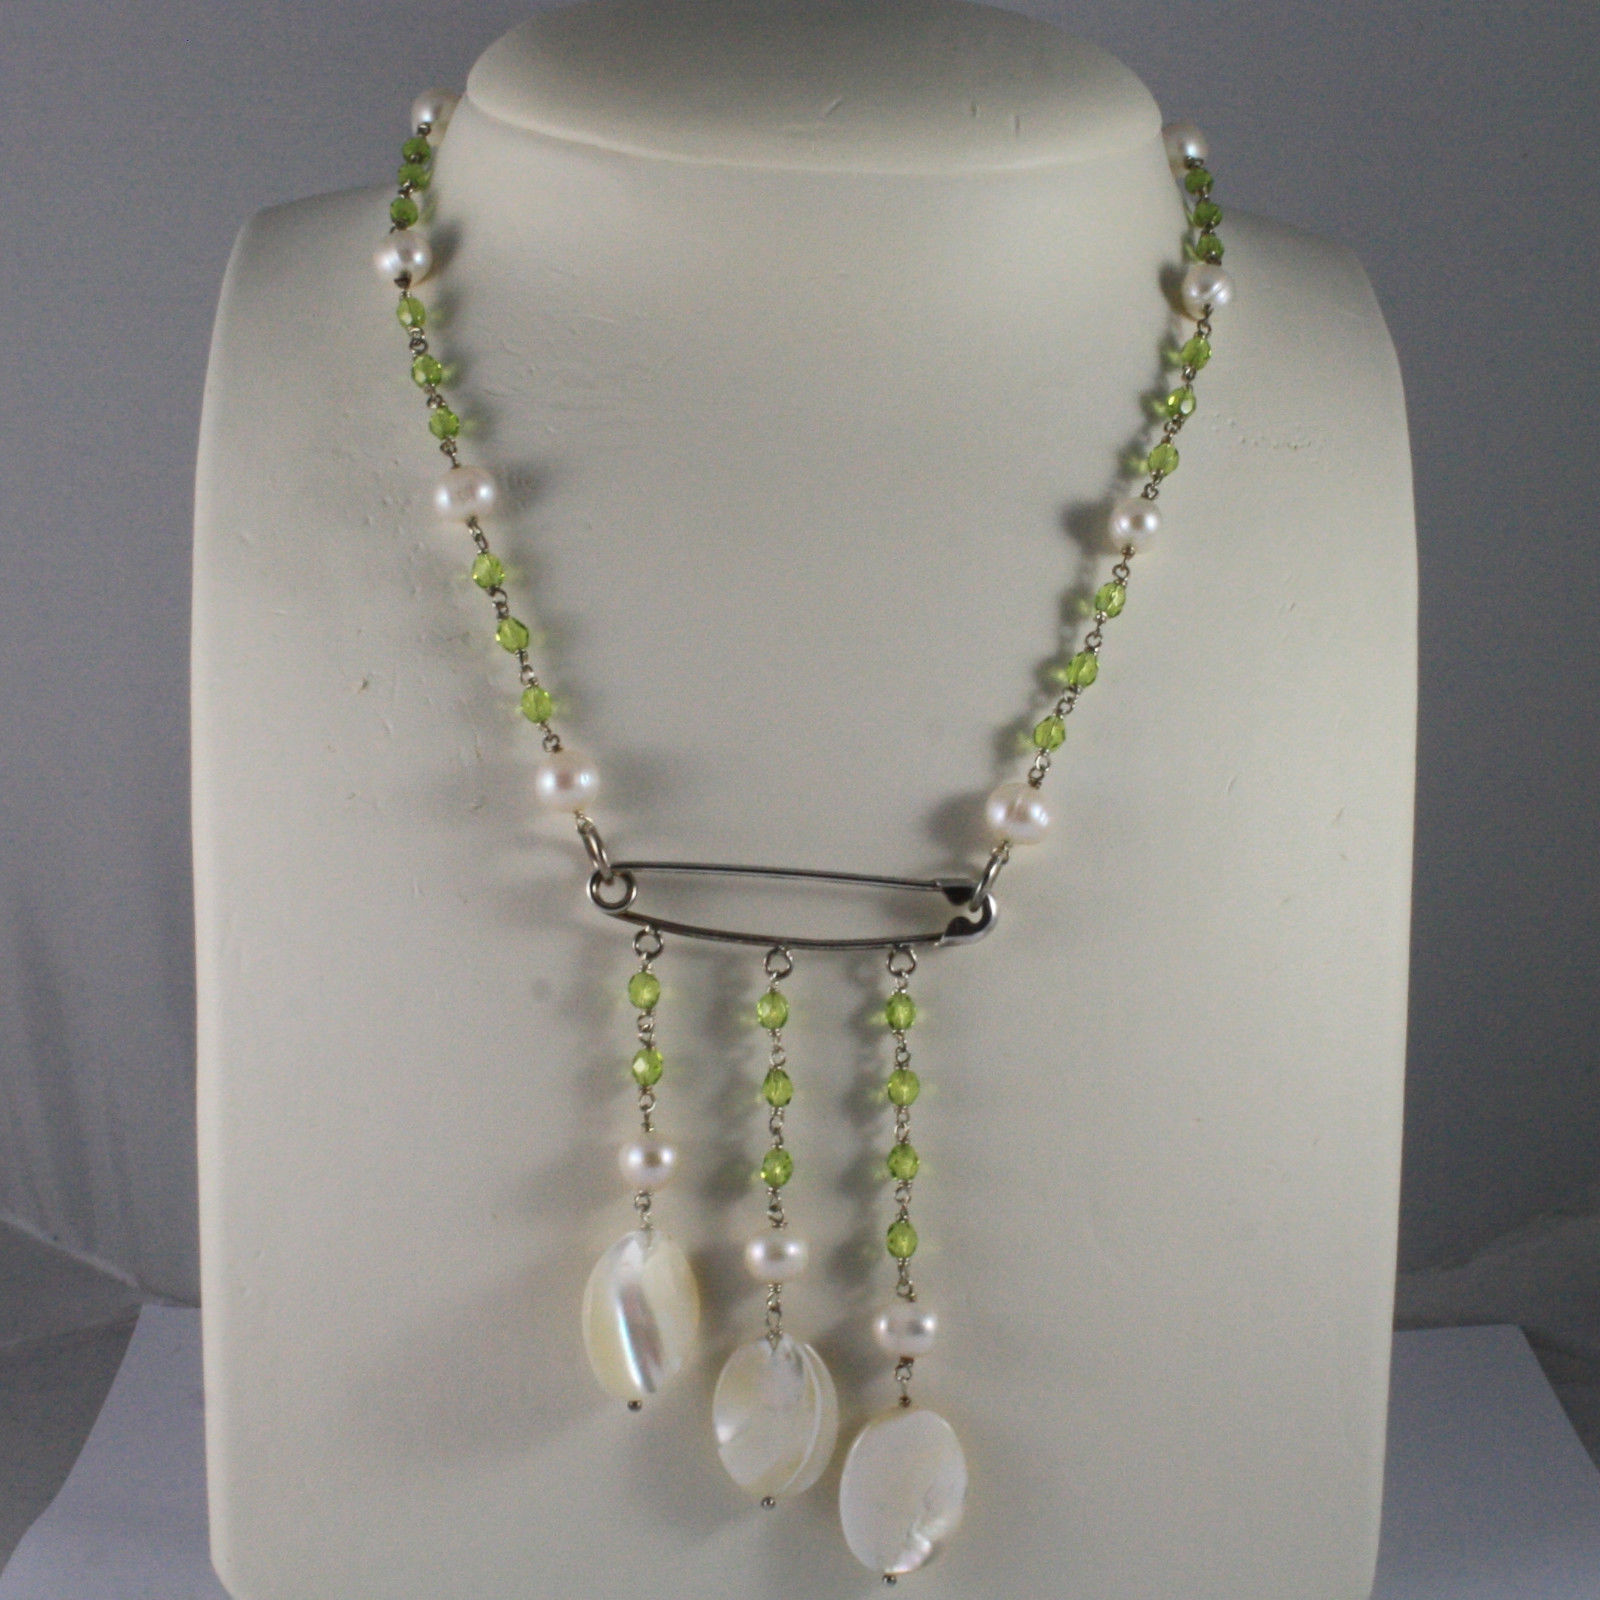 .925 SILVER RHODIUM NECKLACE WITH GREEN CRISTALS, MOTHER OF PEARL, WHITE PEARLS